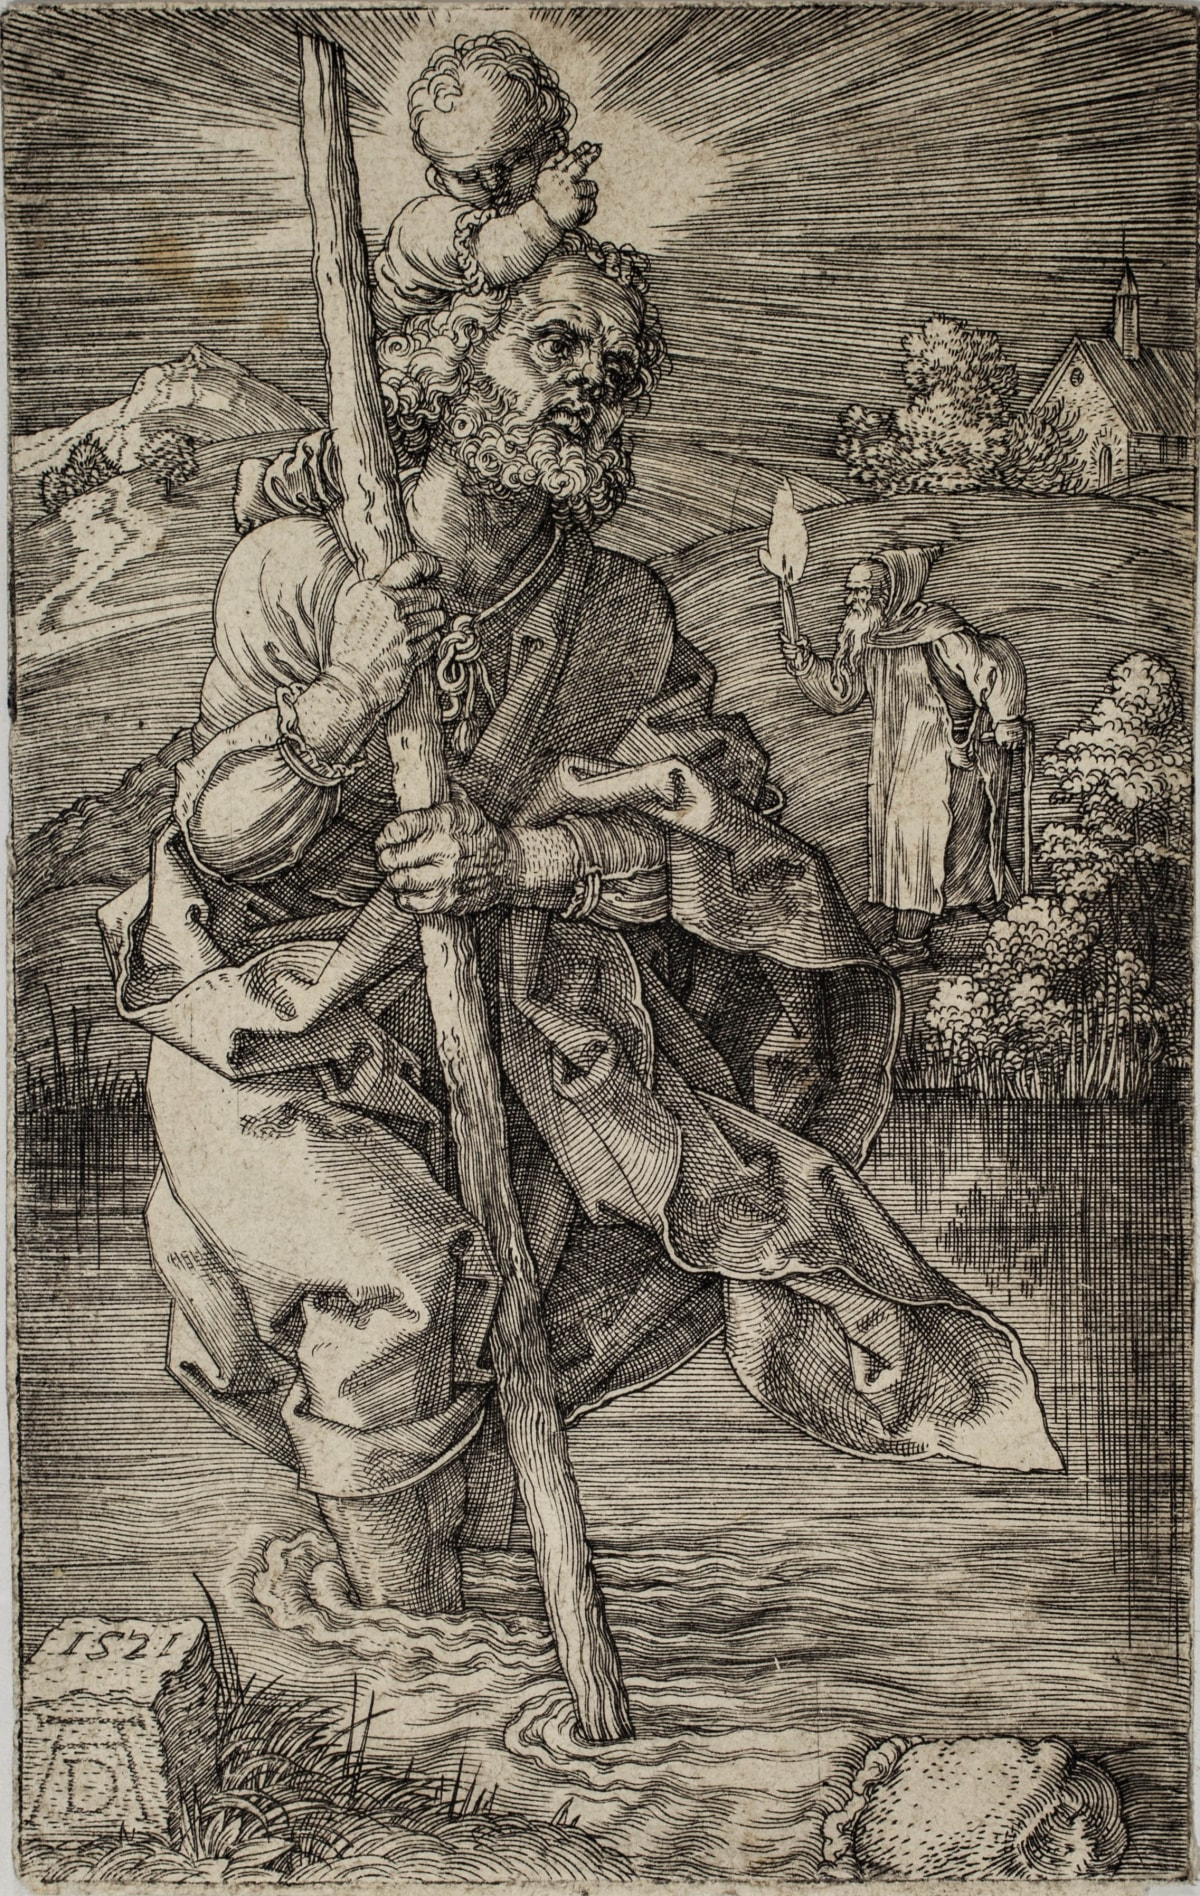 Albrecht Dürer, Saint Christopher facing right, 1521 Engraving 11.7 x 7.7 cm Meder 52 b/d before the scratches on the Child's fingers and in the light.